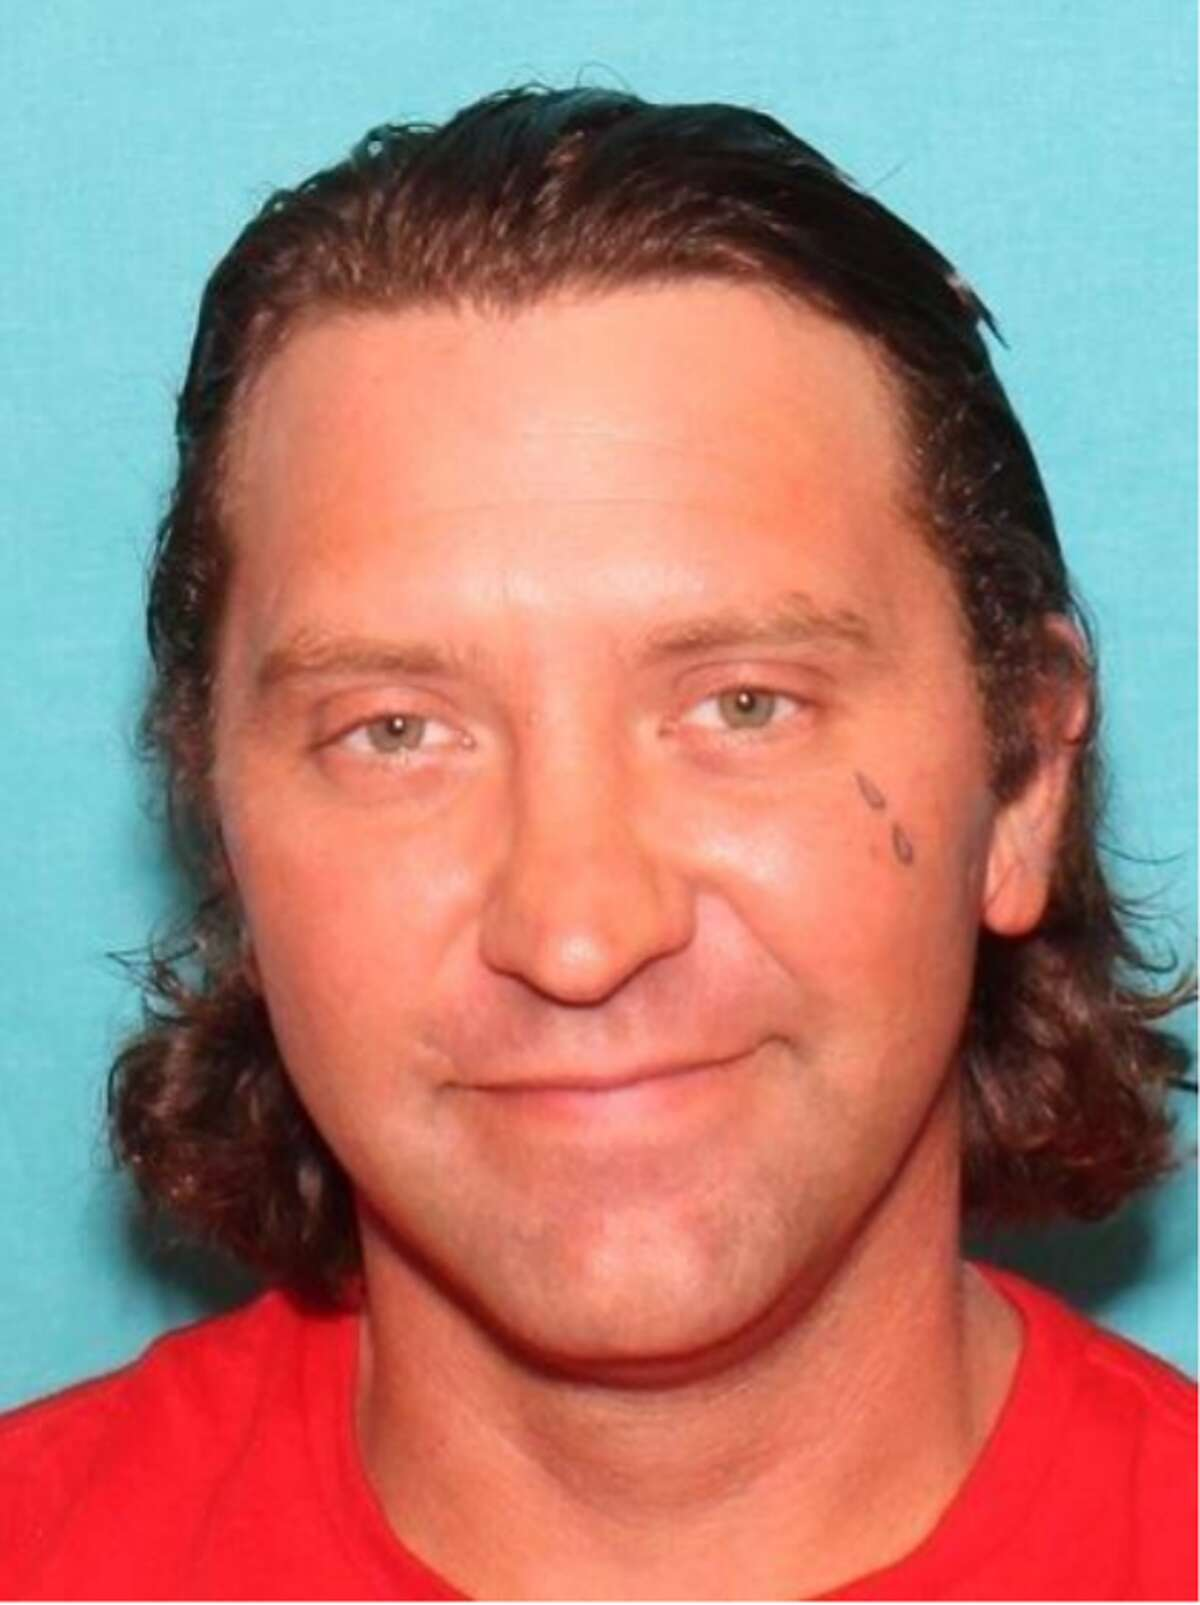 Seth Aaron Ator, 36, was identified as the gunman responsible for killing seven people and injuring 23 others in Saturday's mass shooting in Midland-Odessa, Texas.